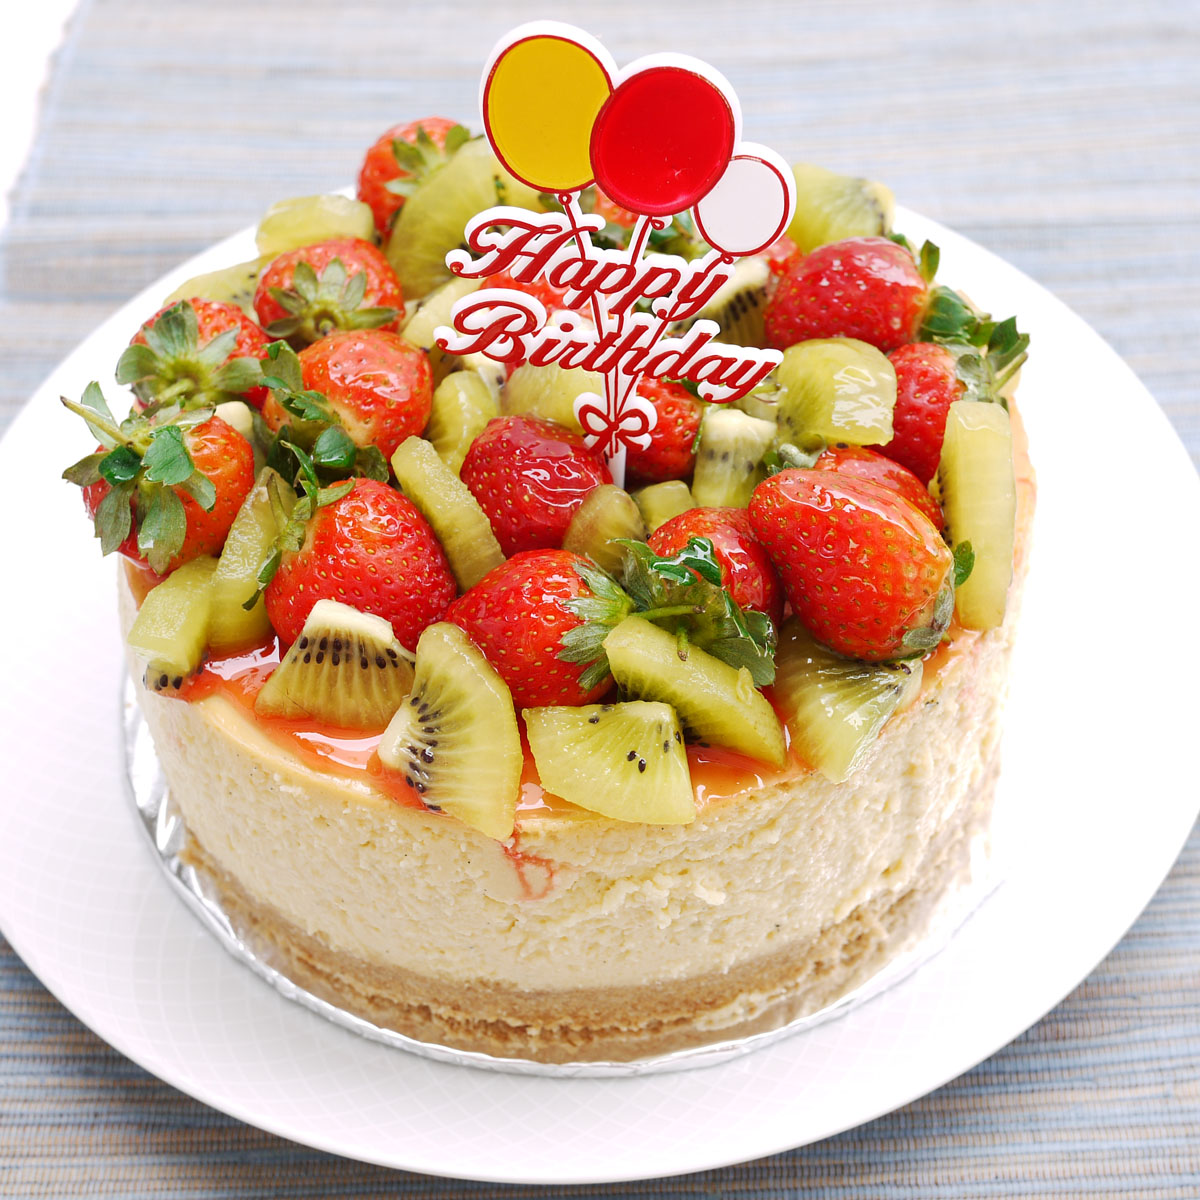 Birthday Fruit Cake Images On Face Book Stumble Upon My Space Linked In Google Plus Twitter And All Informal Communication Locales You Are